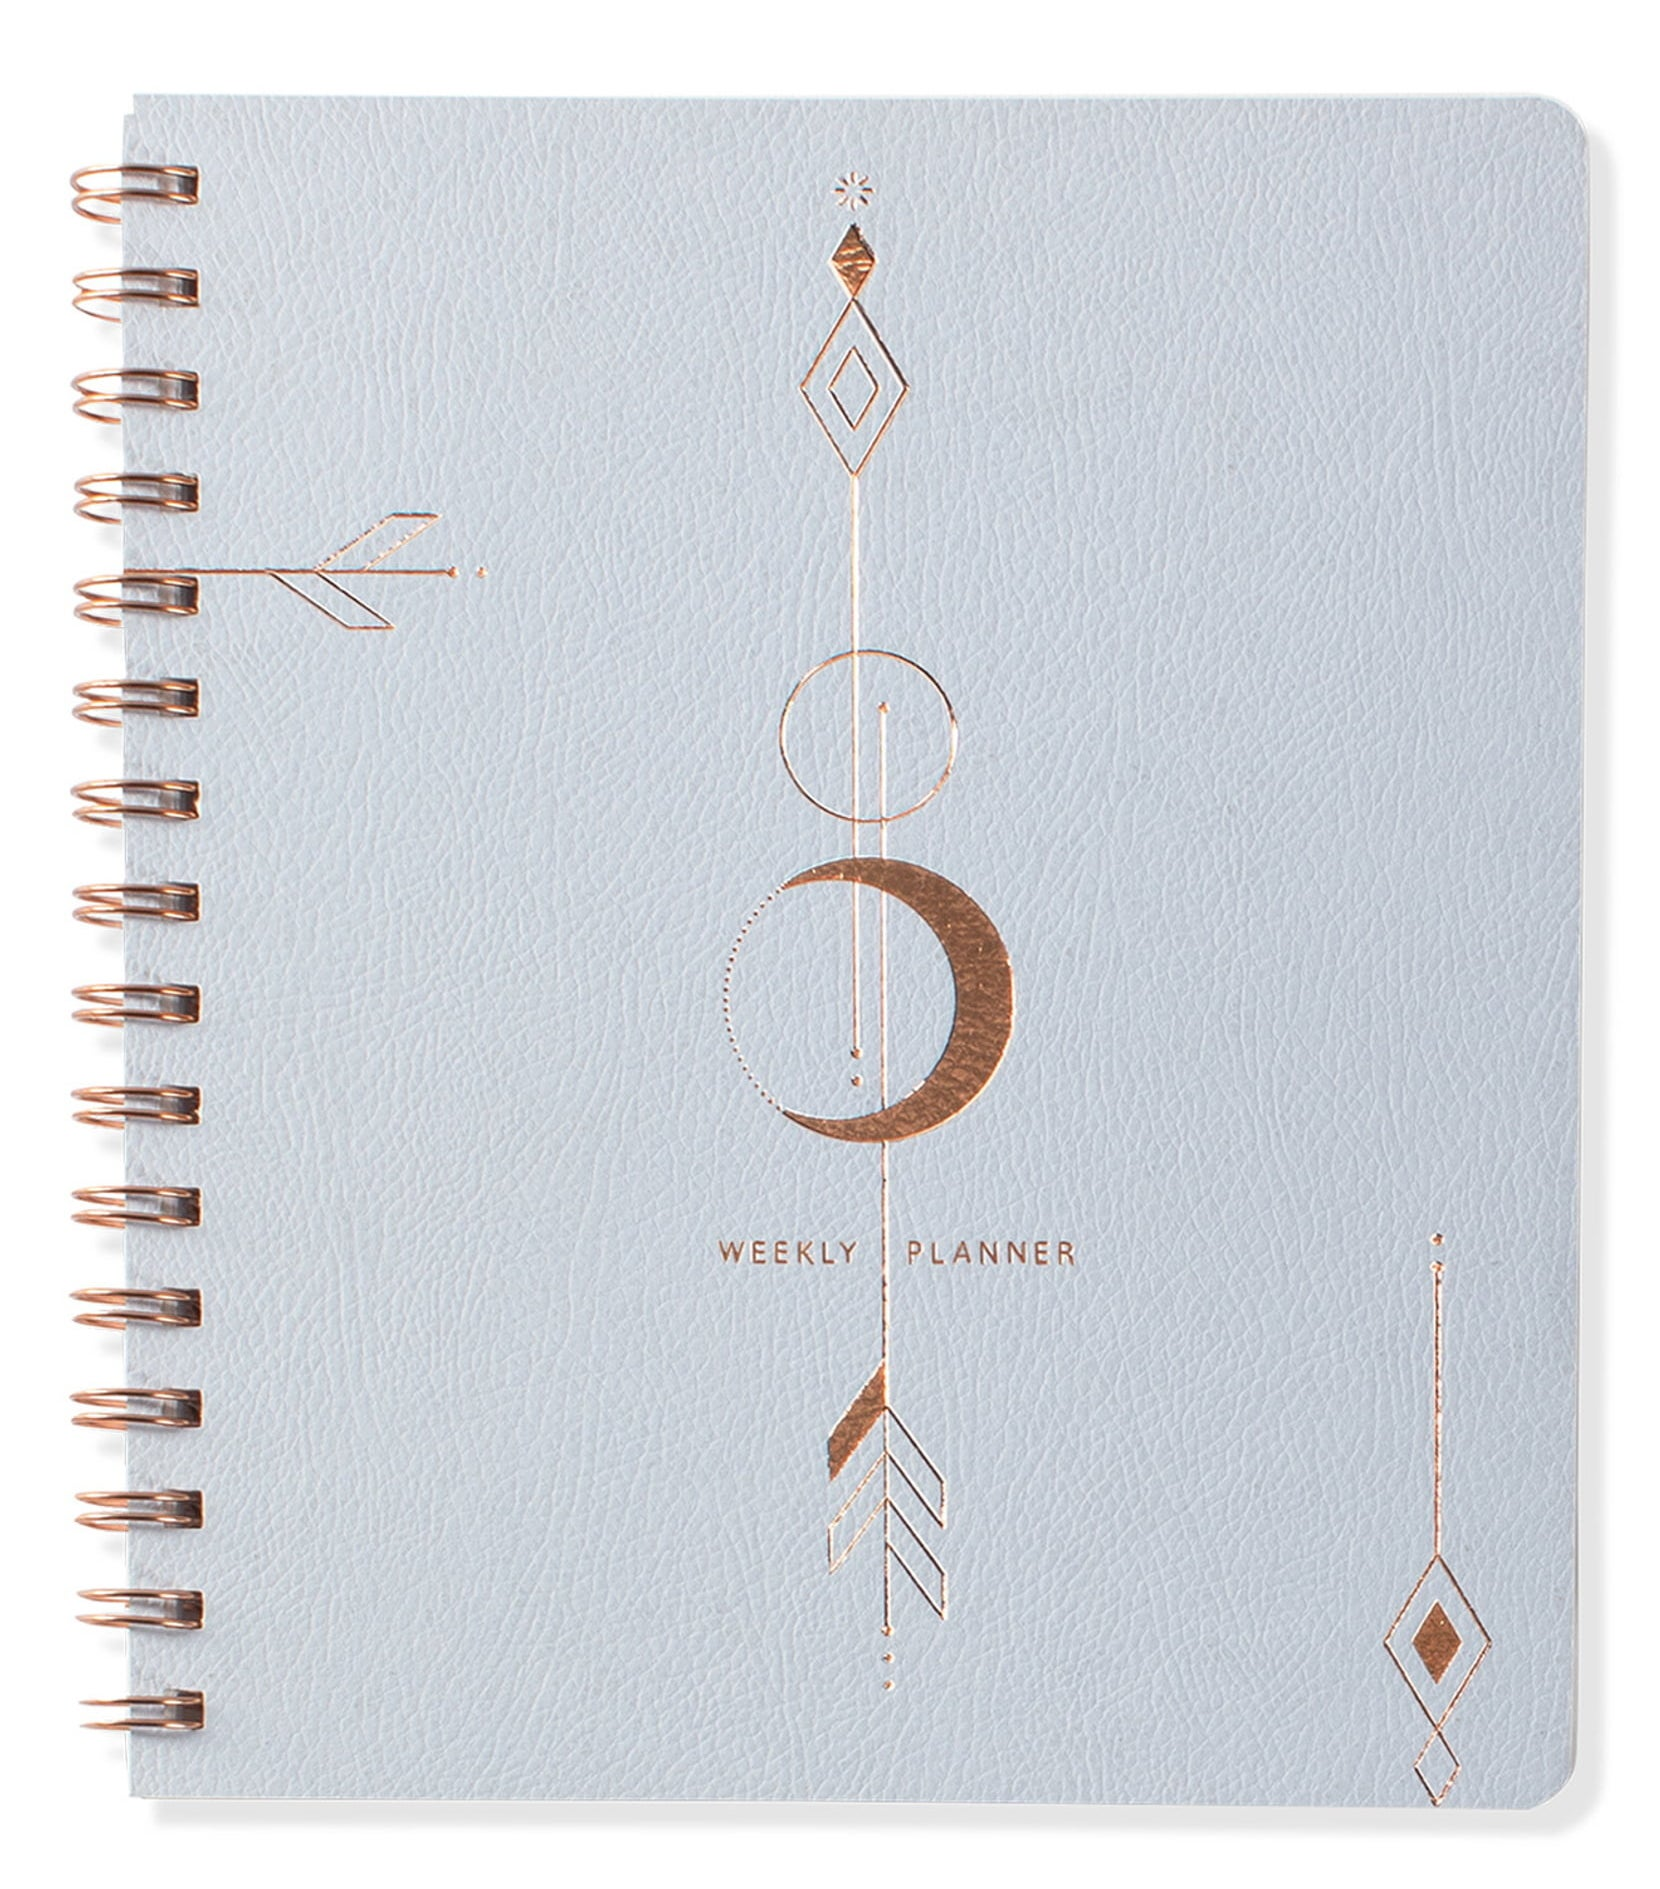 """The light blue planner with a moon arrow design and the words """"weekly planner"""" printed on it"""